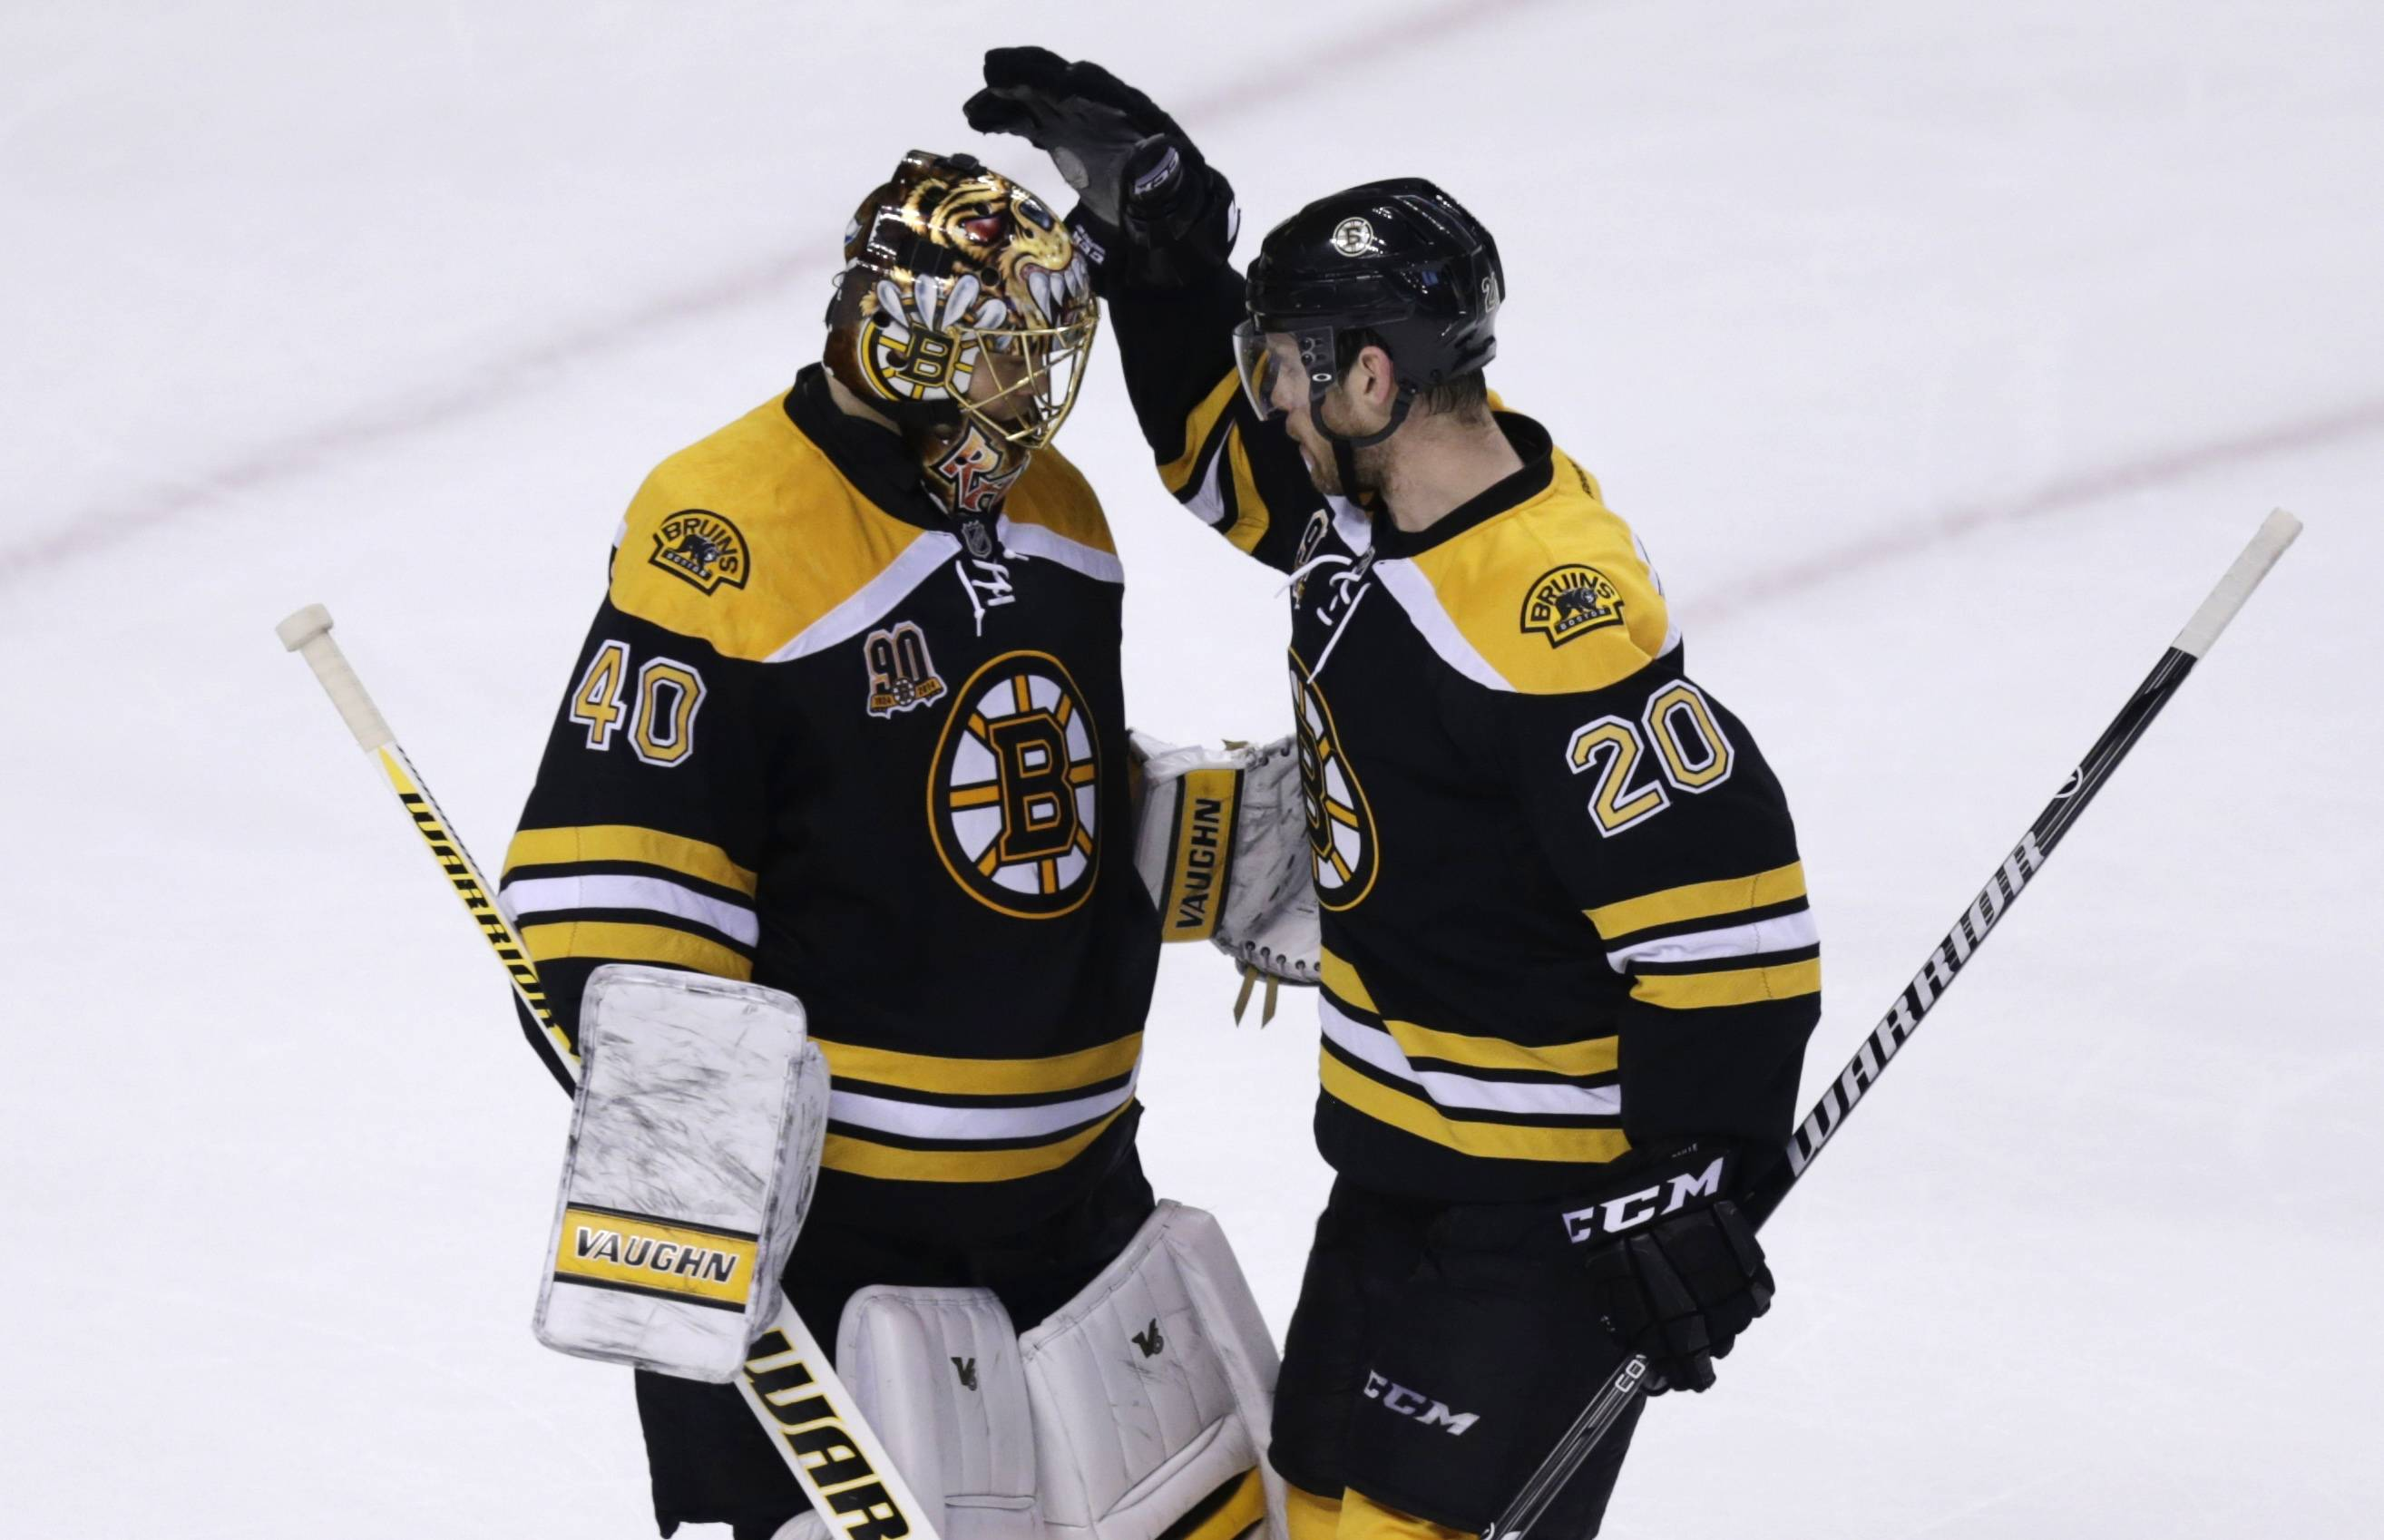 Boston Bruins goalie Tuukka Rask (40) is congratulated by teammate Daniel Paille (20) after defeating the Montreal Canadiens in Game 2 in the second-round of the Stanley Cup hockey playoff series in Boston, Saturday, May 3, 2014. The Bruins defeated the Canadiens 5-3, tying the series at one game each. (AP Photo/Charles Krupa)